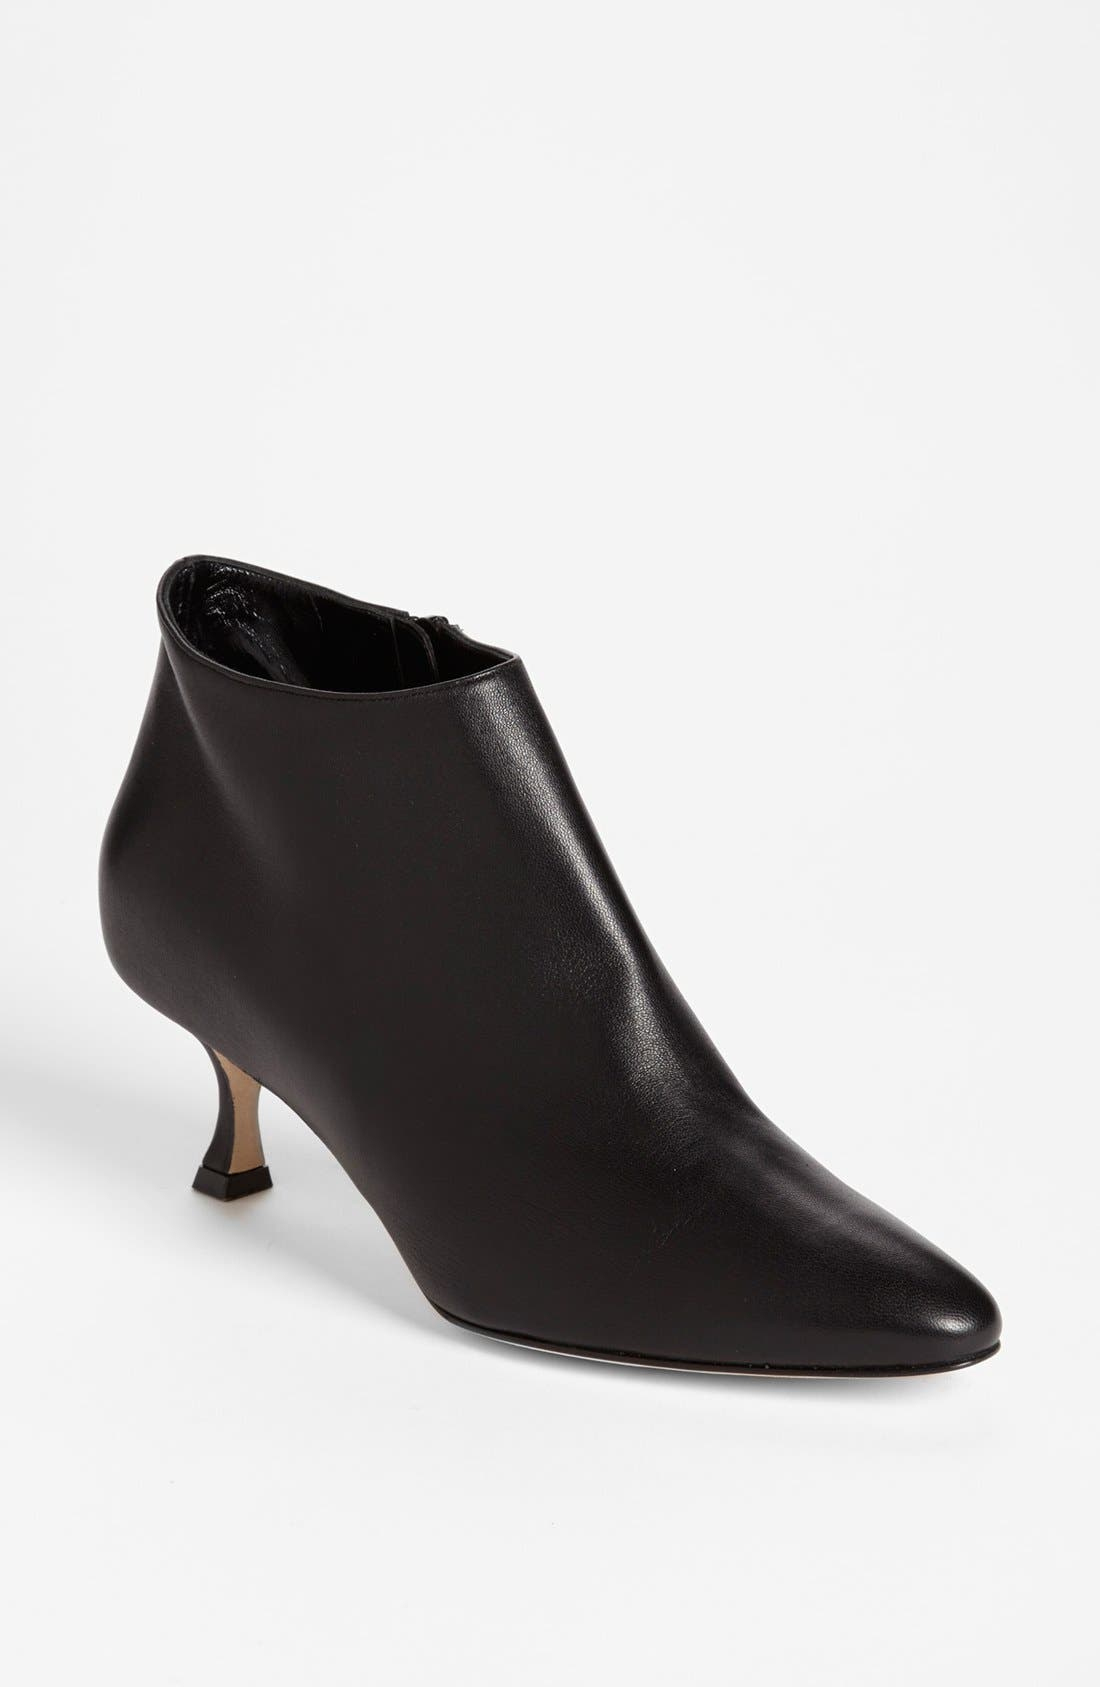 Alternate Image 1 Selected - Manolo Blahnik 'Maleeba' Bootie